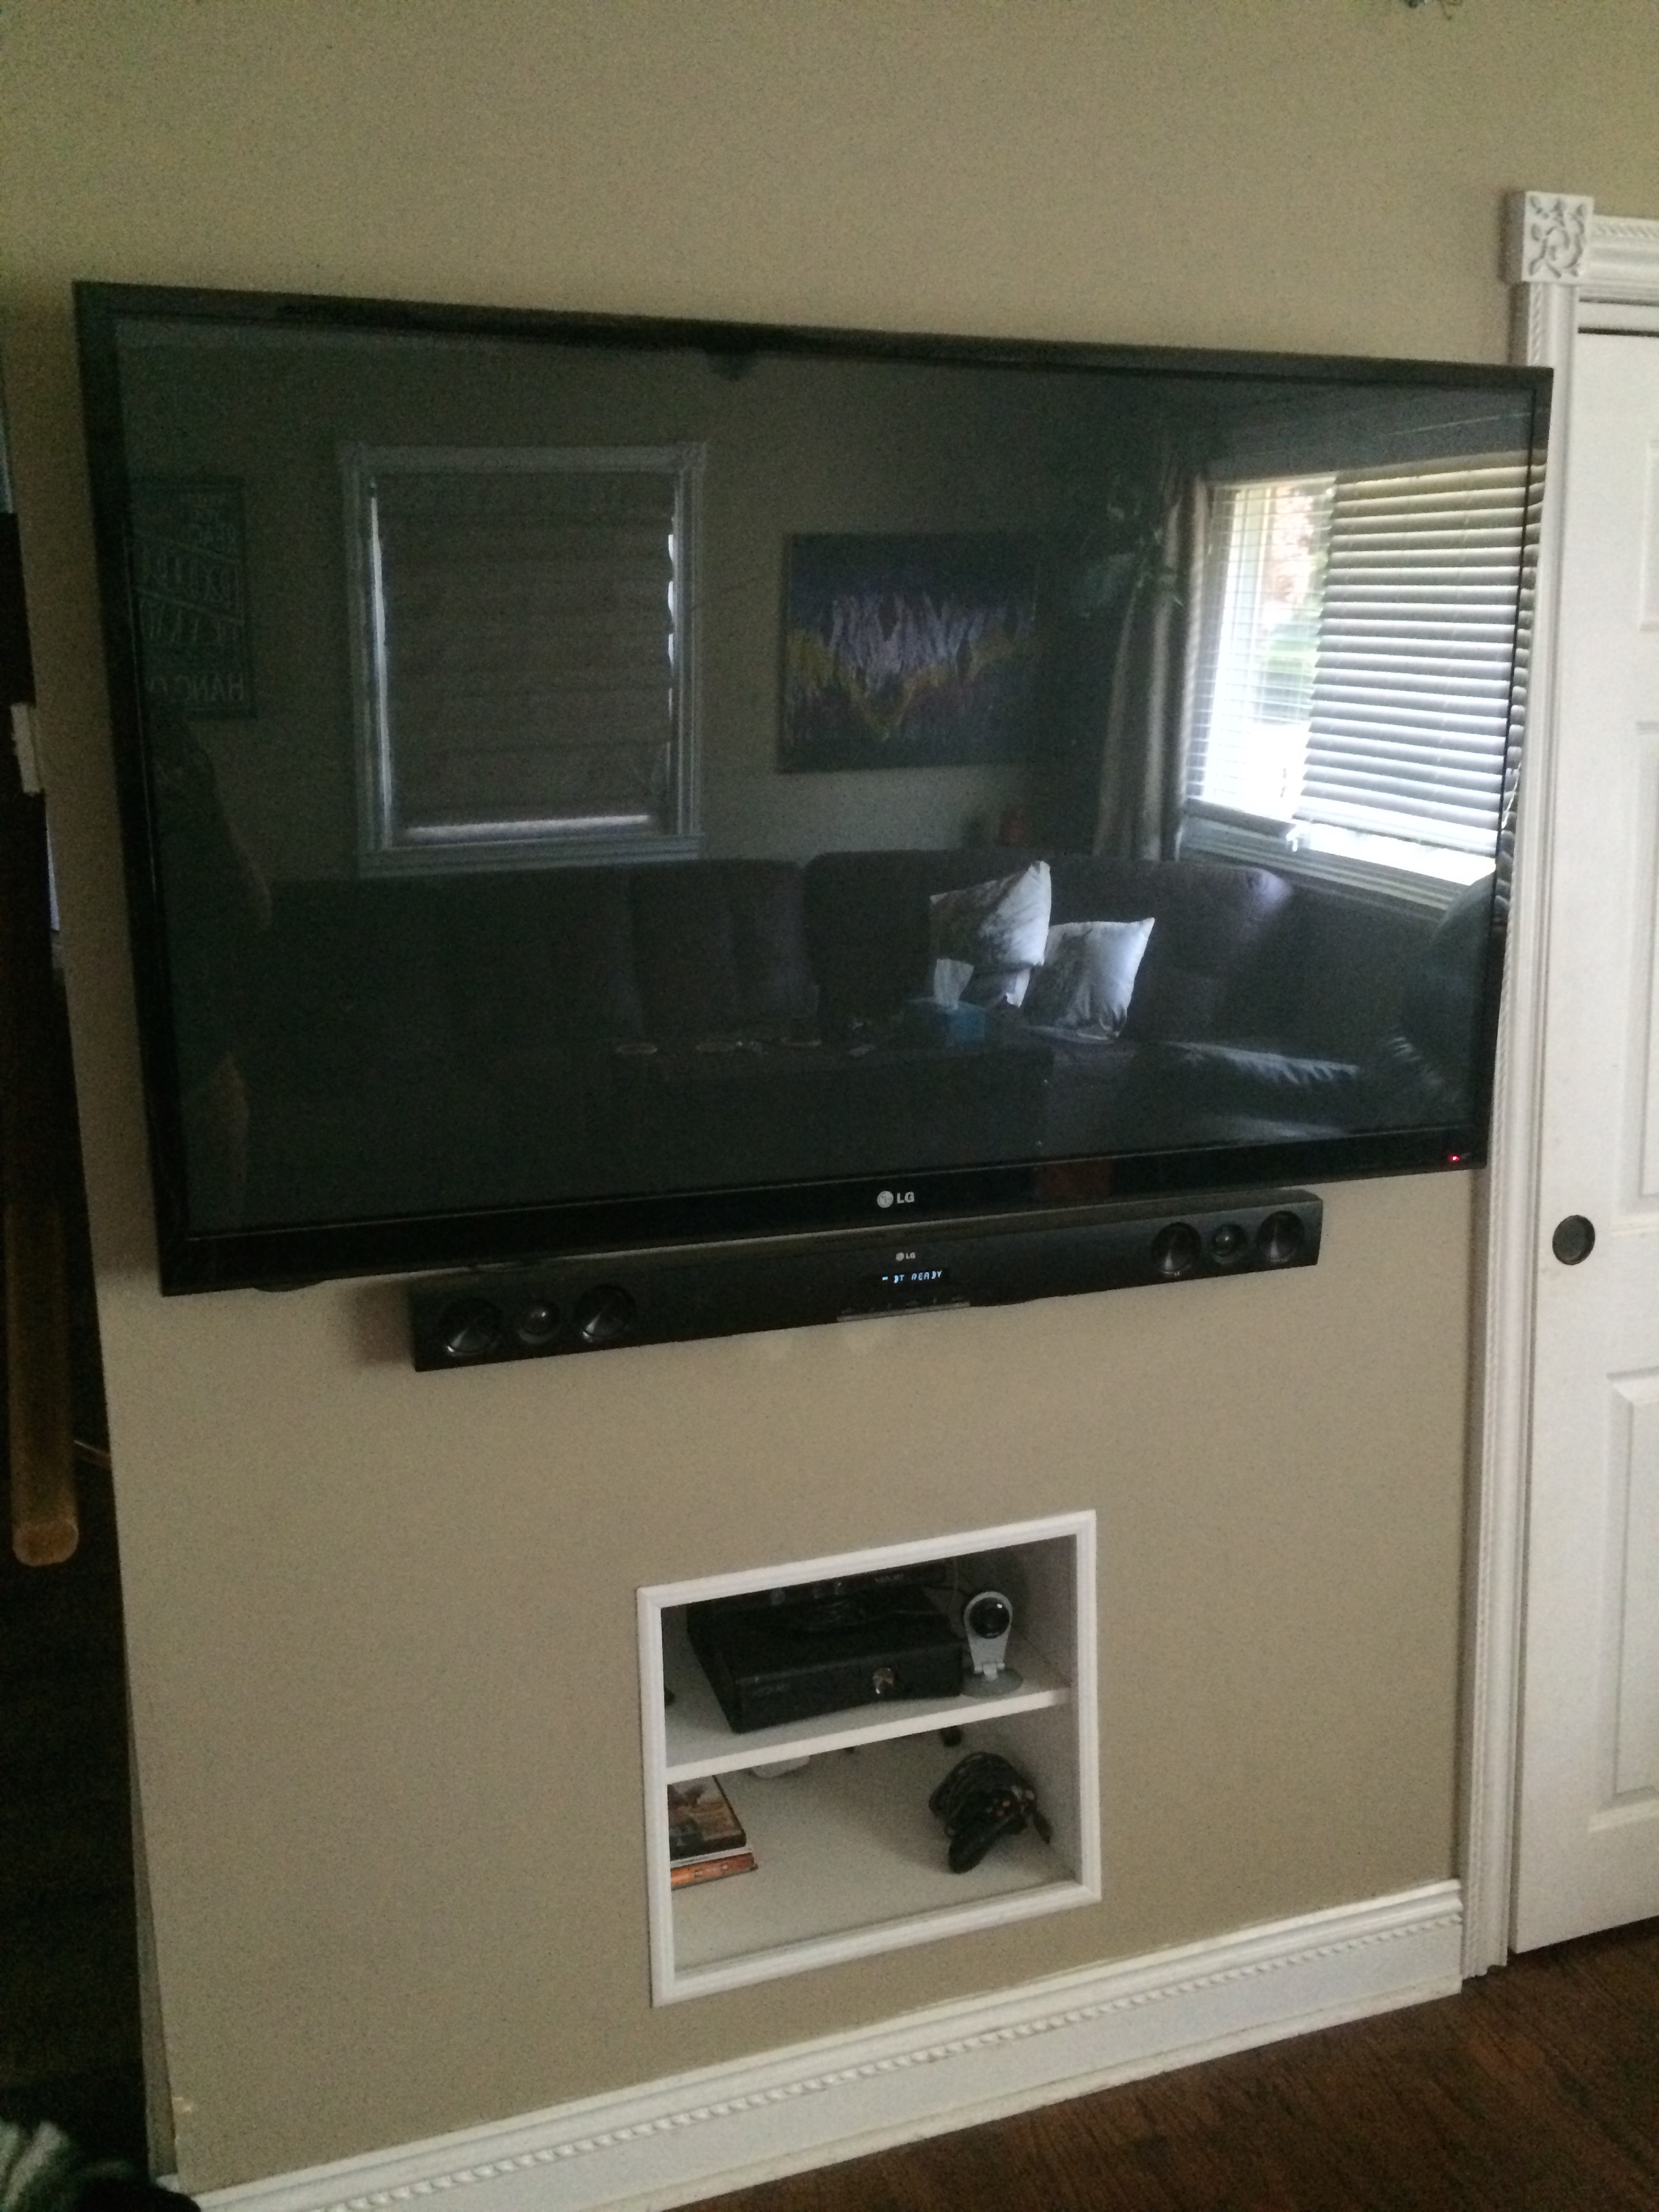 Tv And Home Theater Installation Electrician Services House Wiring To A Wall Oven